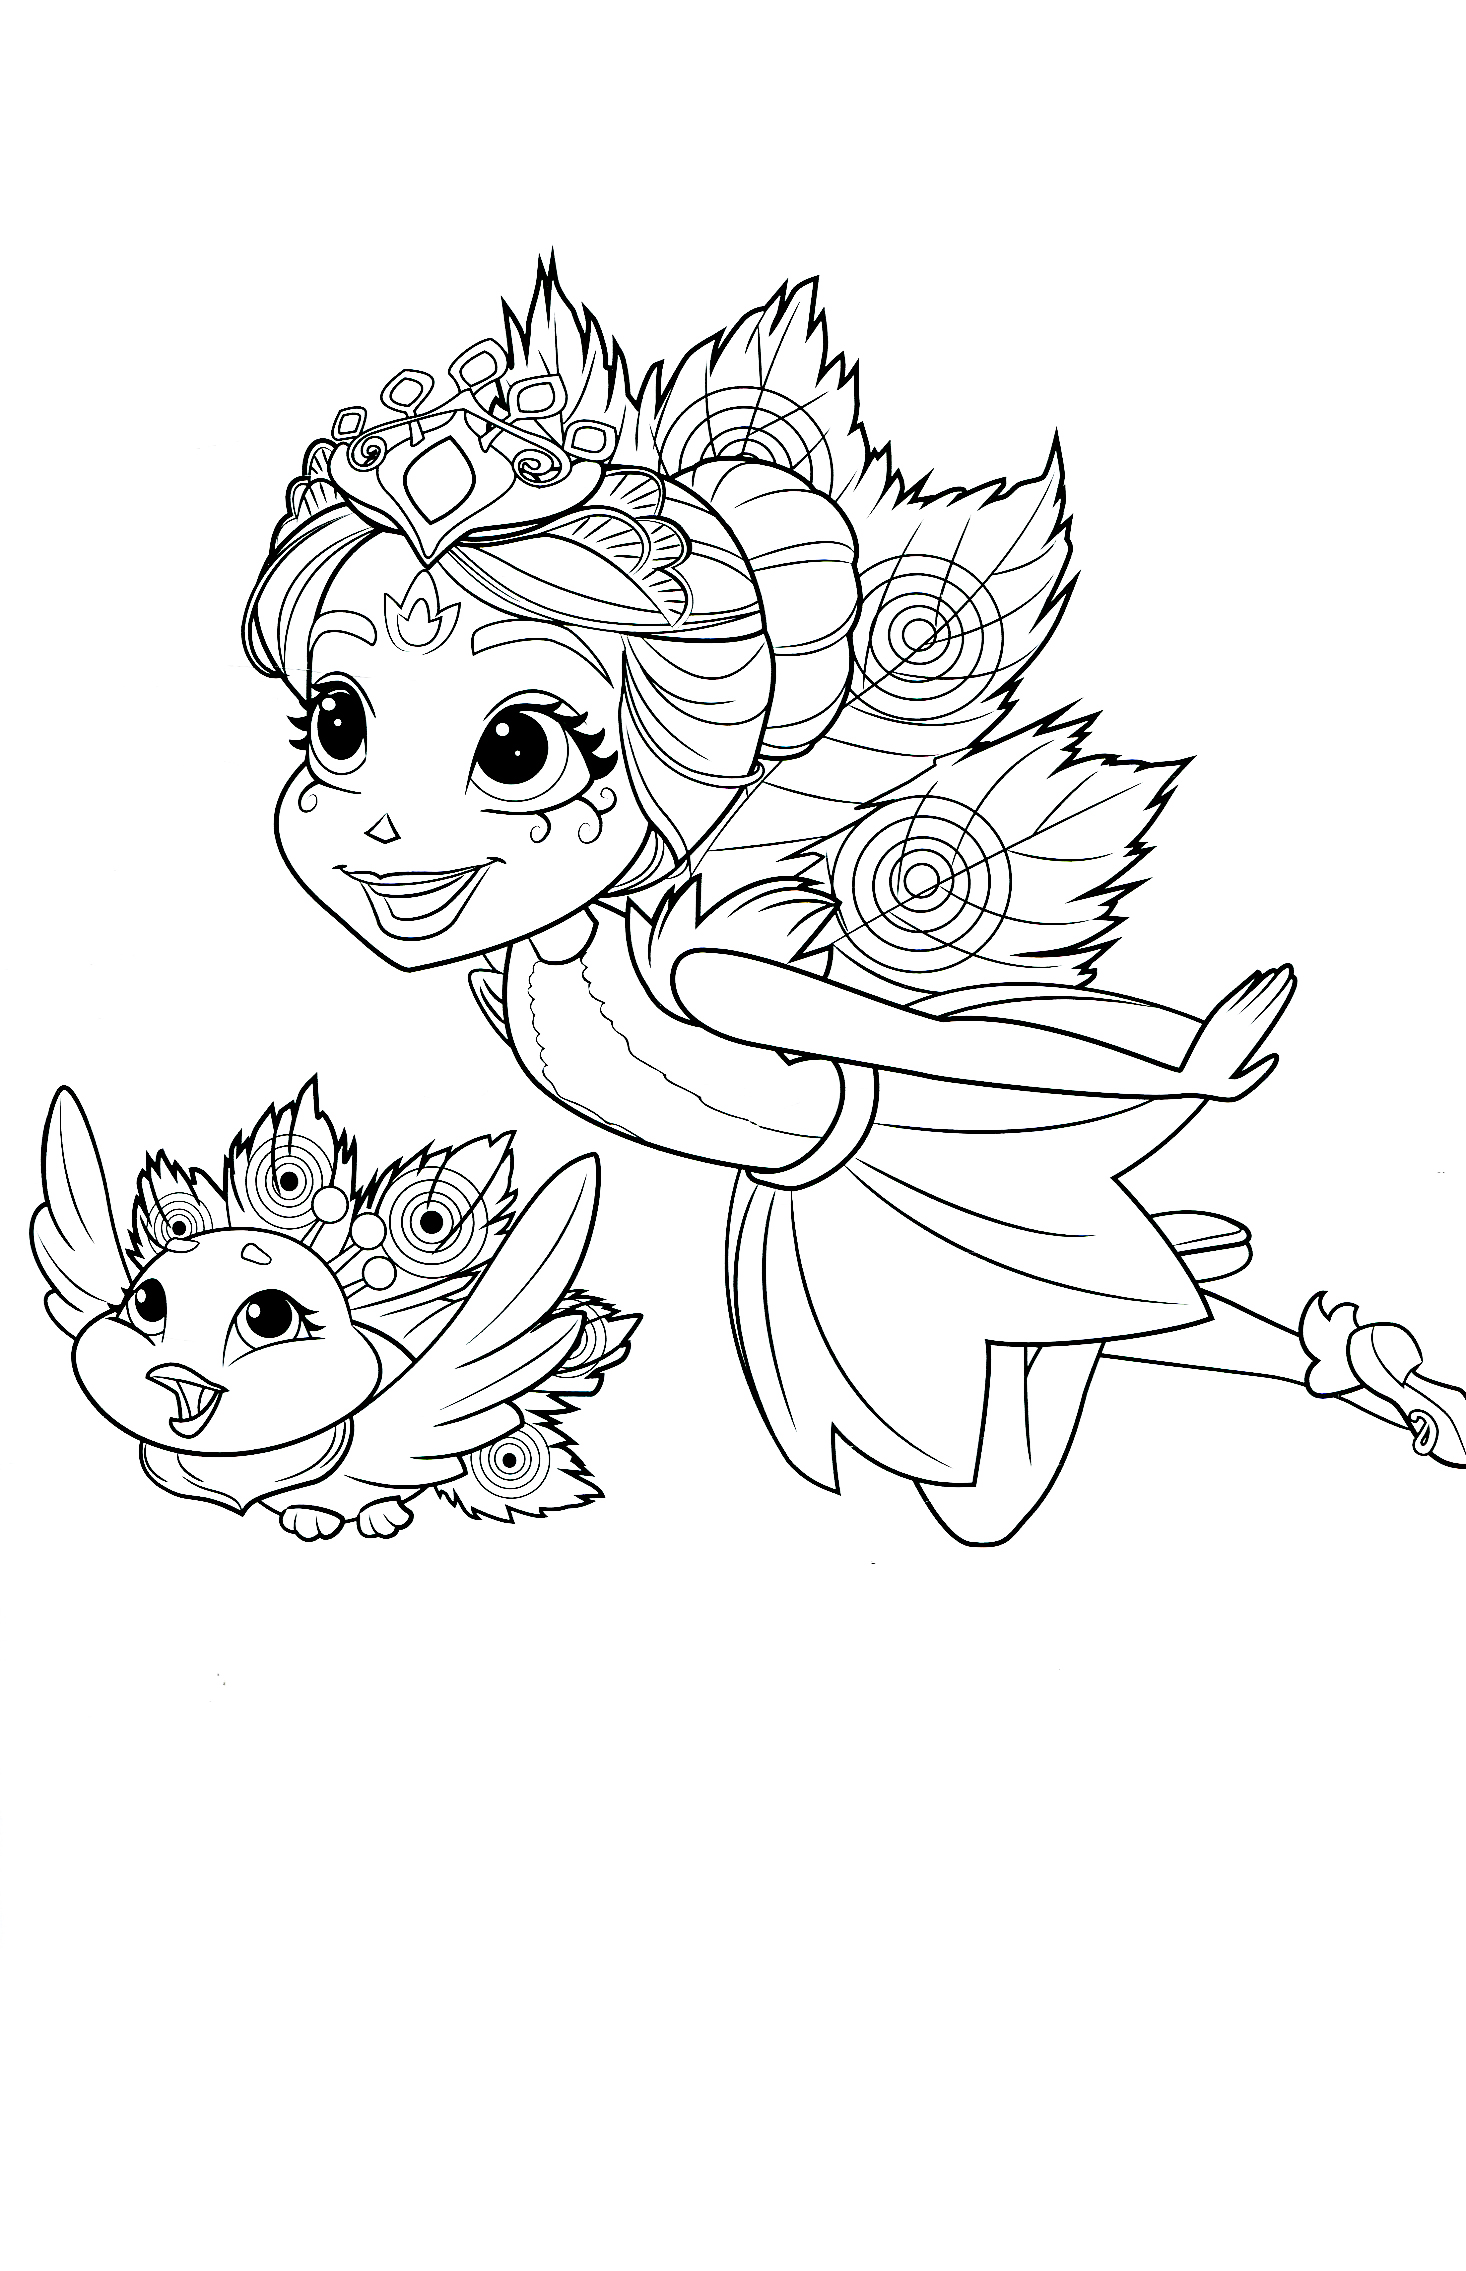 Enchantimals new coloring pages - YouLoveIt.com